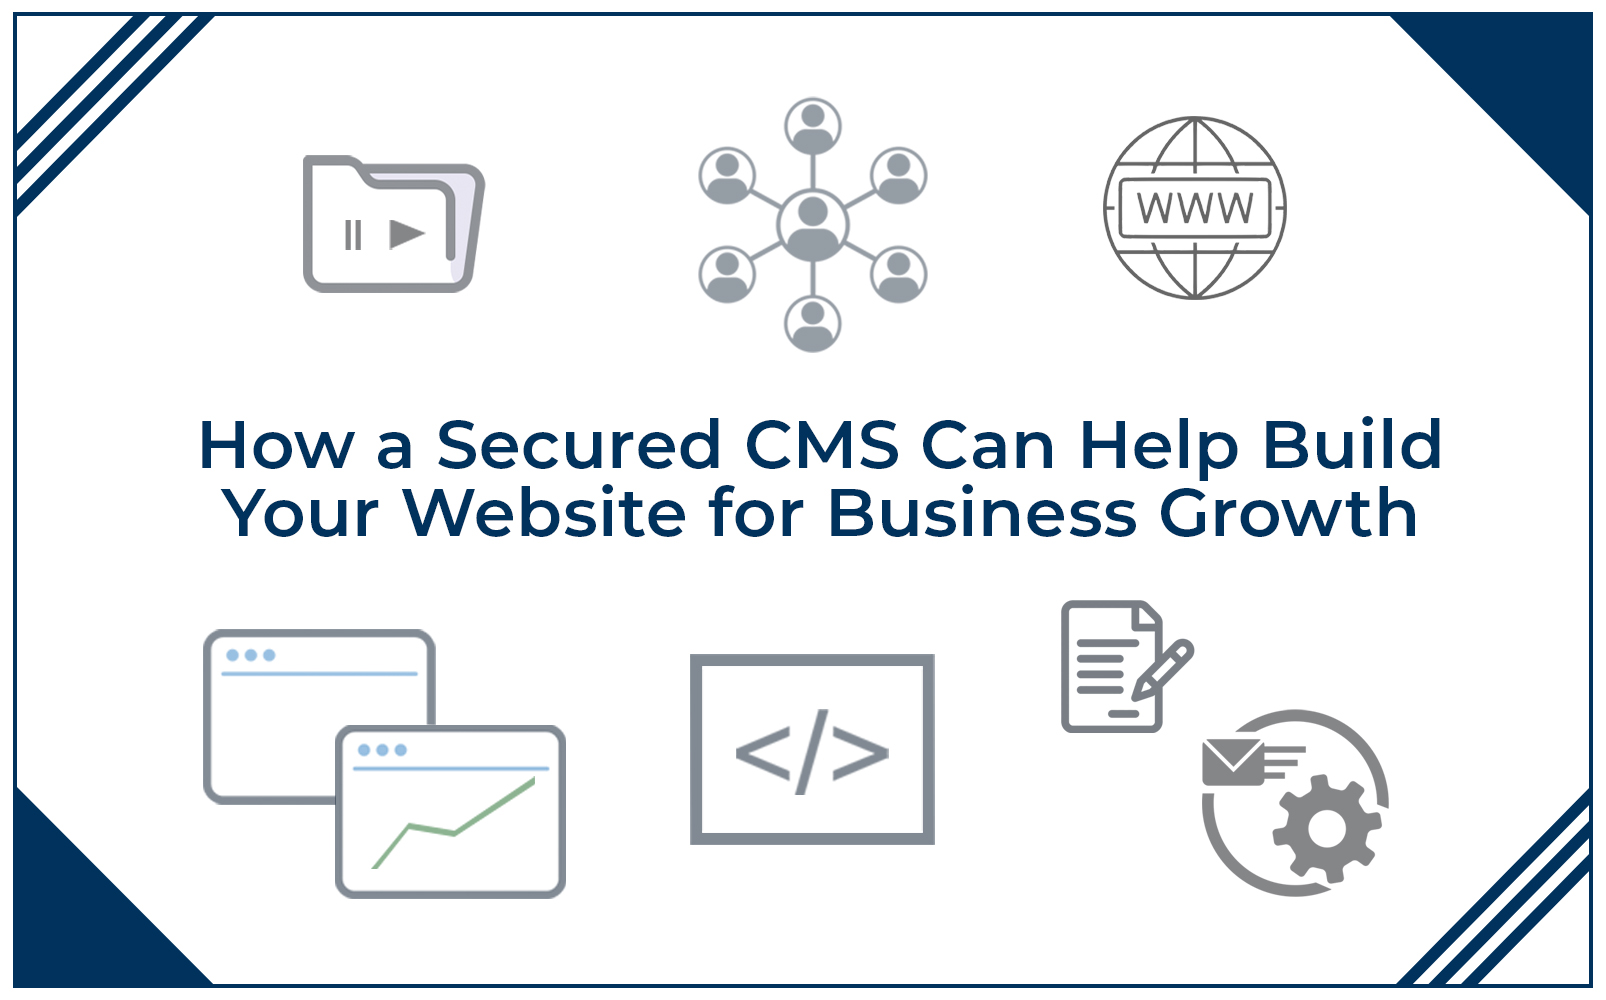 how a secured cms can help build your website for business growth thumbnail